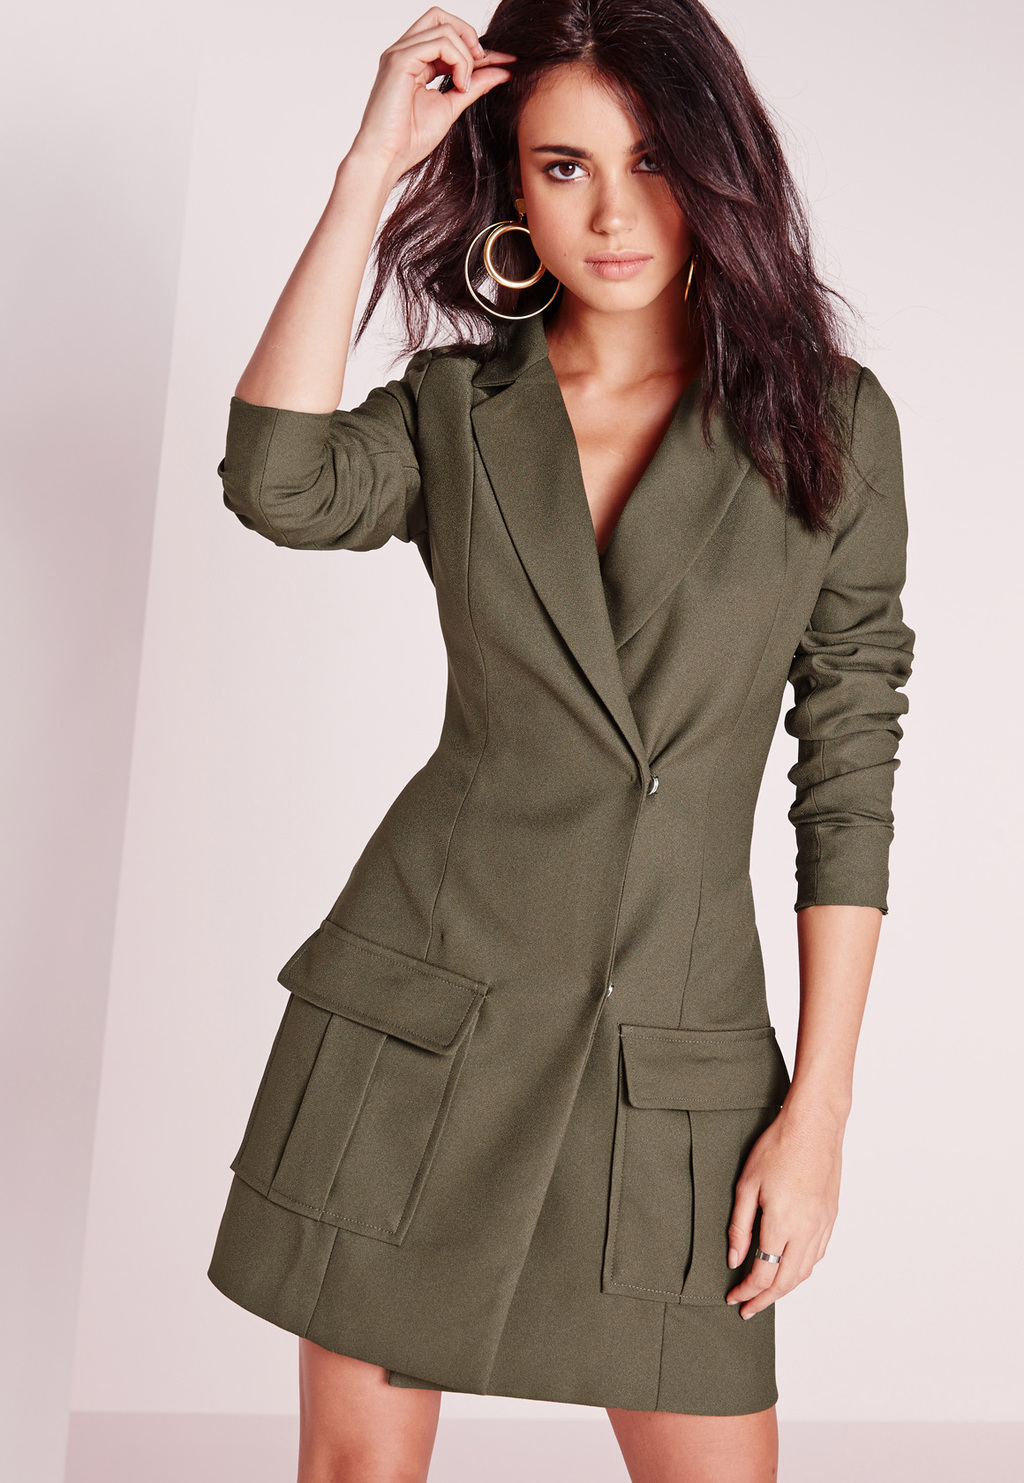 Pocket Detail Blazer Dress Khaki, Beige - style: faux wrap/wrap; length: mini; neckline: low v-neck; fit: tailored/fitted; pattern: plain; hip detail: front pockets at hip; predominant colour: khaki; occasions: evening; fibres: polyester/polyamide - 100%; sleeve length: long sleeve; sleeve style: standard; texture group: crepes; pattern type: fabric; season: s/s 2016